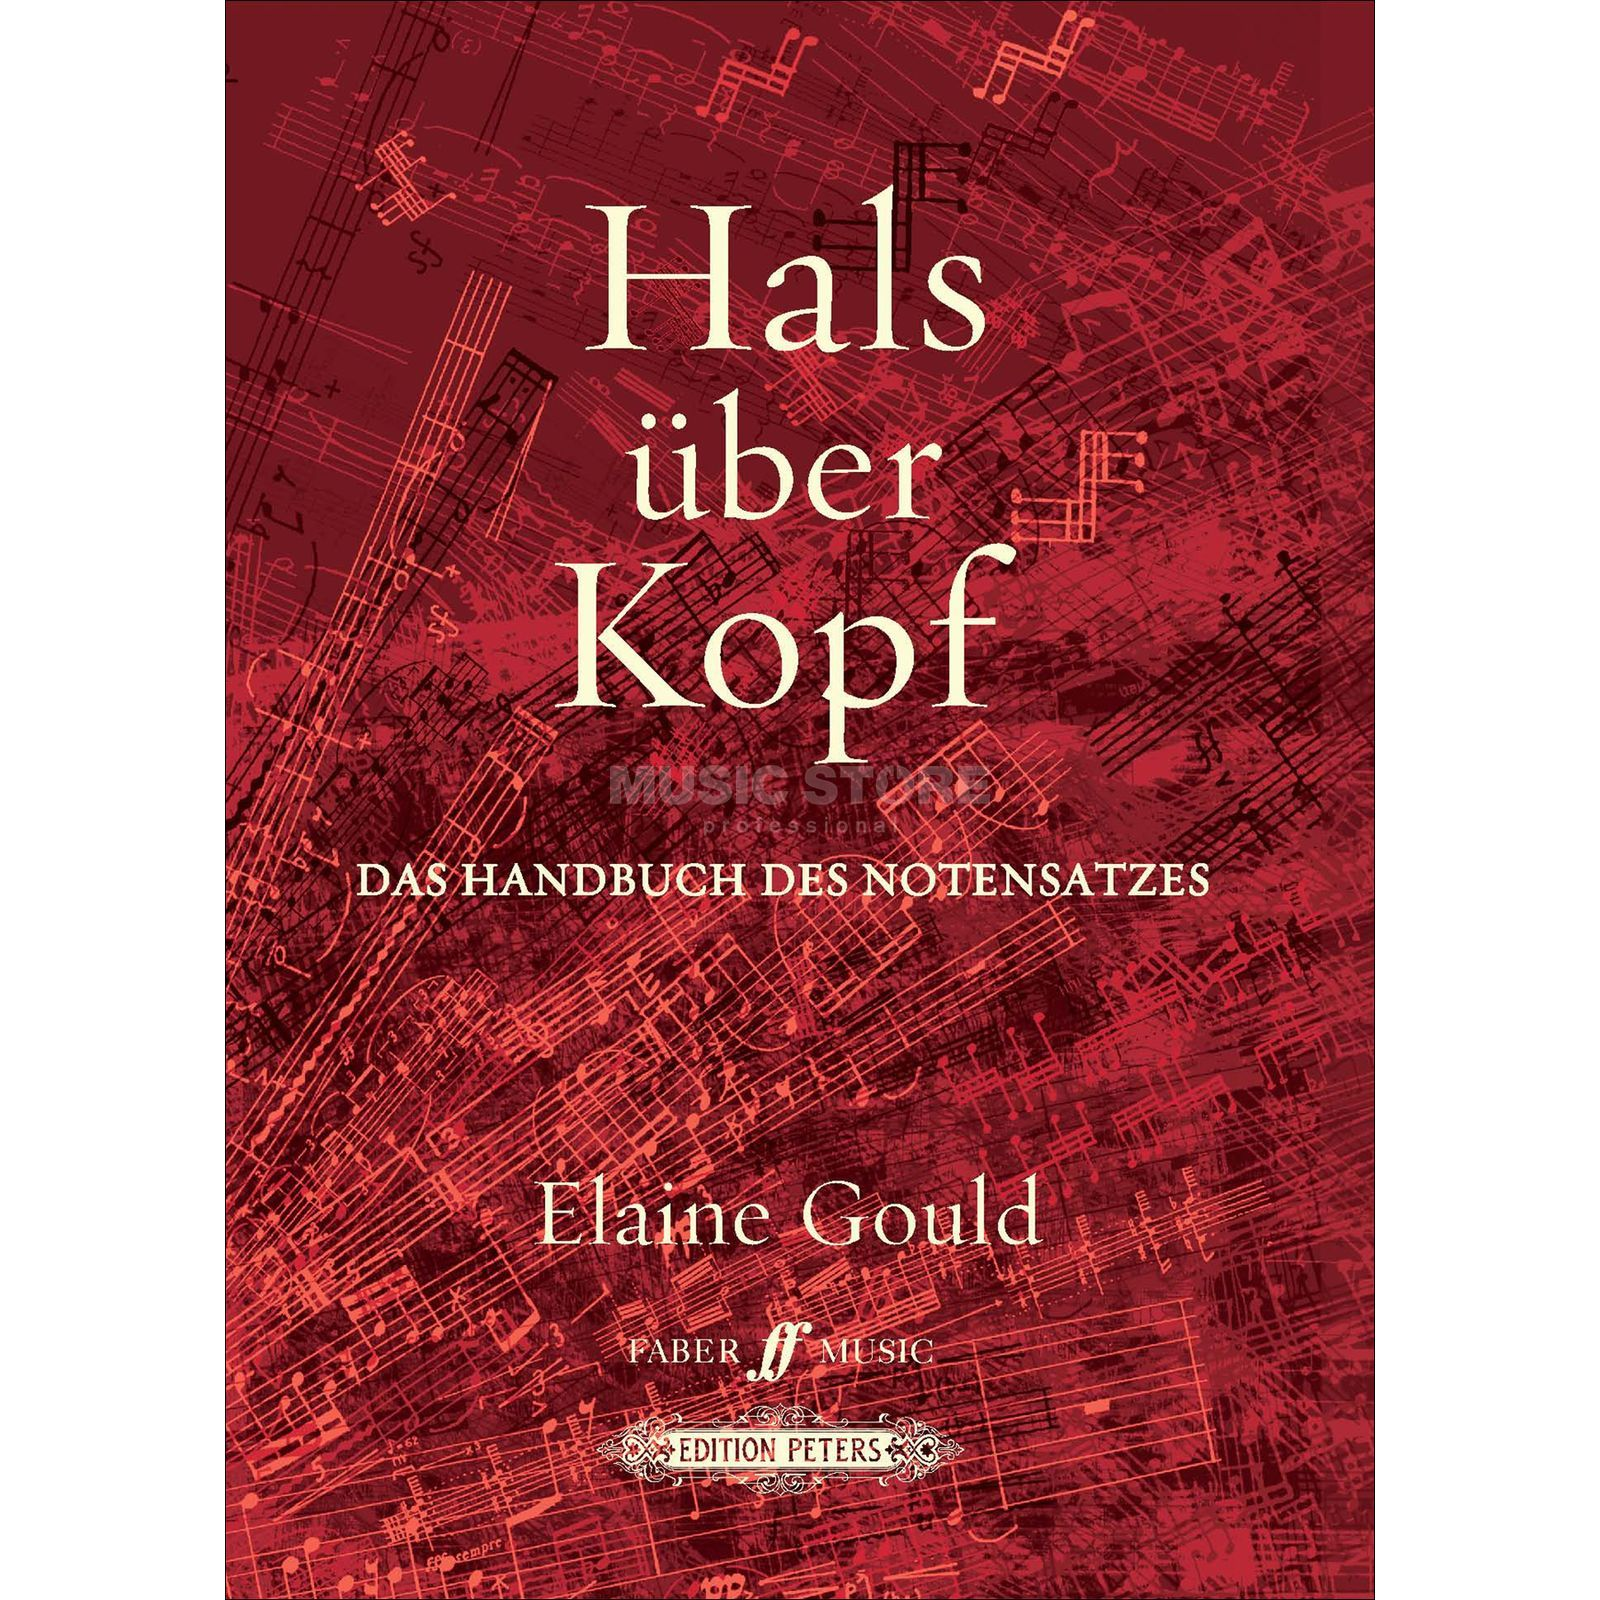 Faber Music Hals über hoofd Elaine Gould Productafbeelding